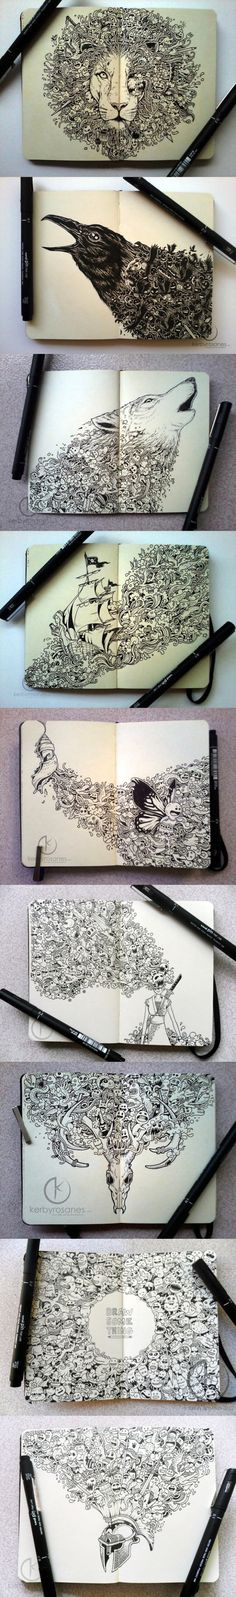 Incredible Moleskine drawings… #doodles #art #drawing